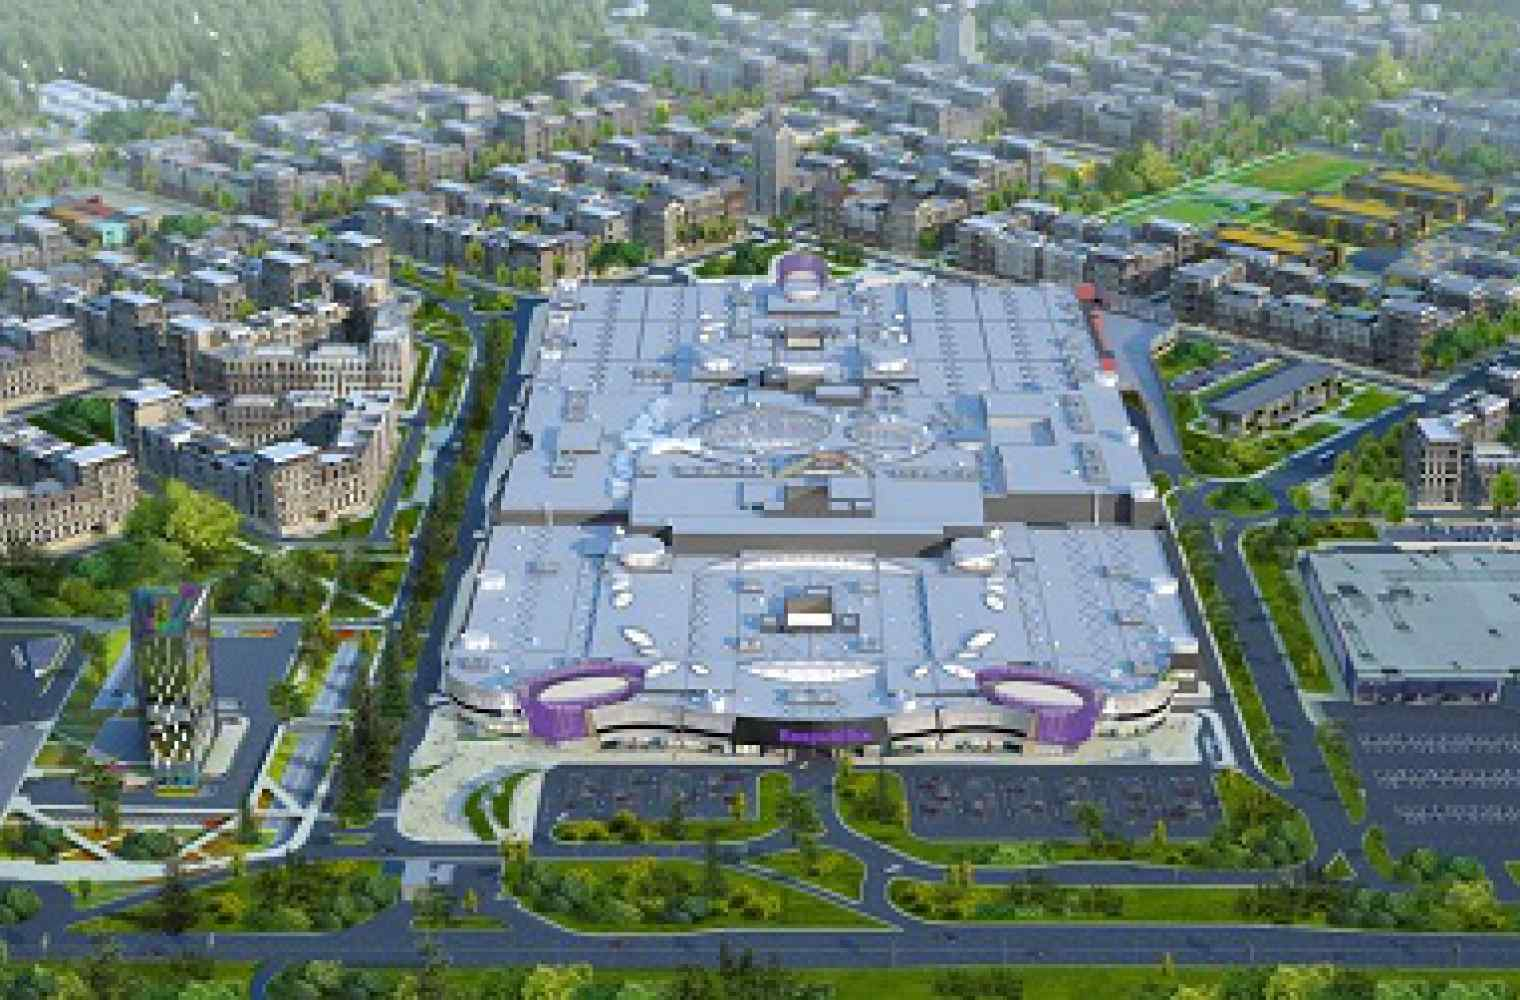 Construction of the biggest shopping and entertainment center in Ukraine is in active progress